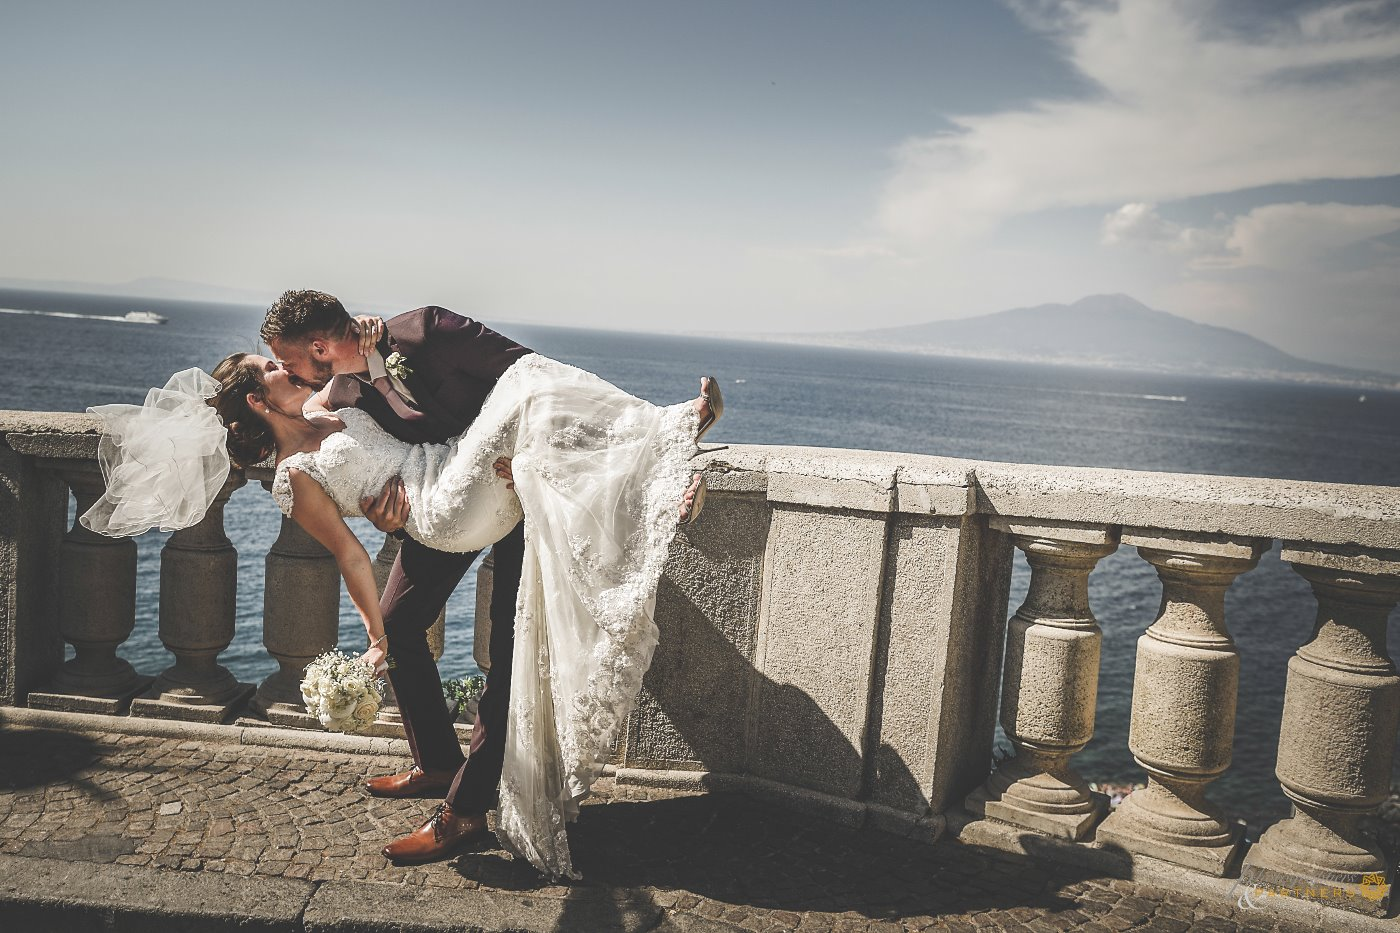 photography_weddings_sorrento_16.jpg